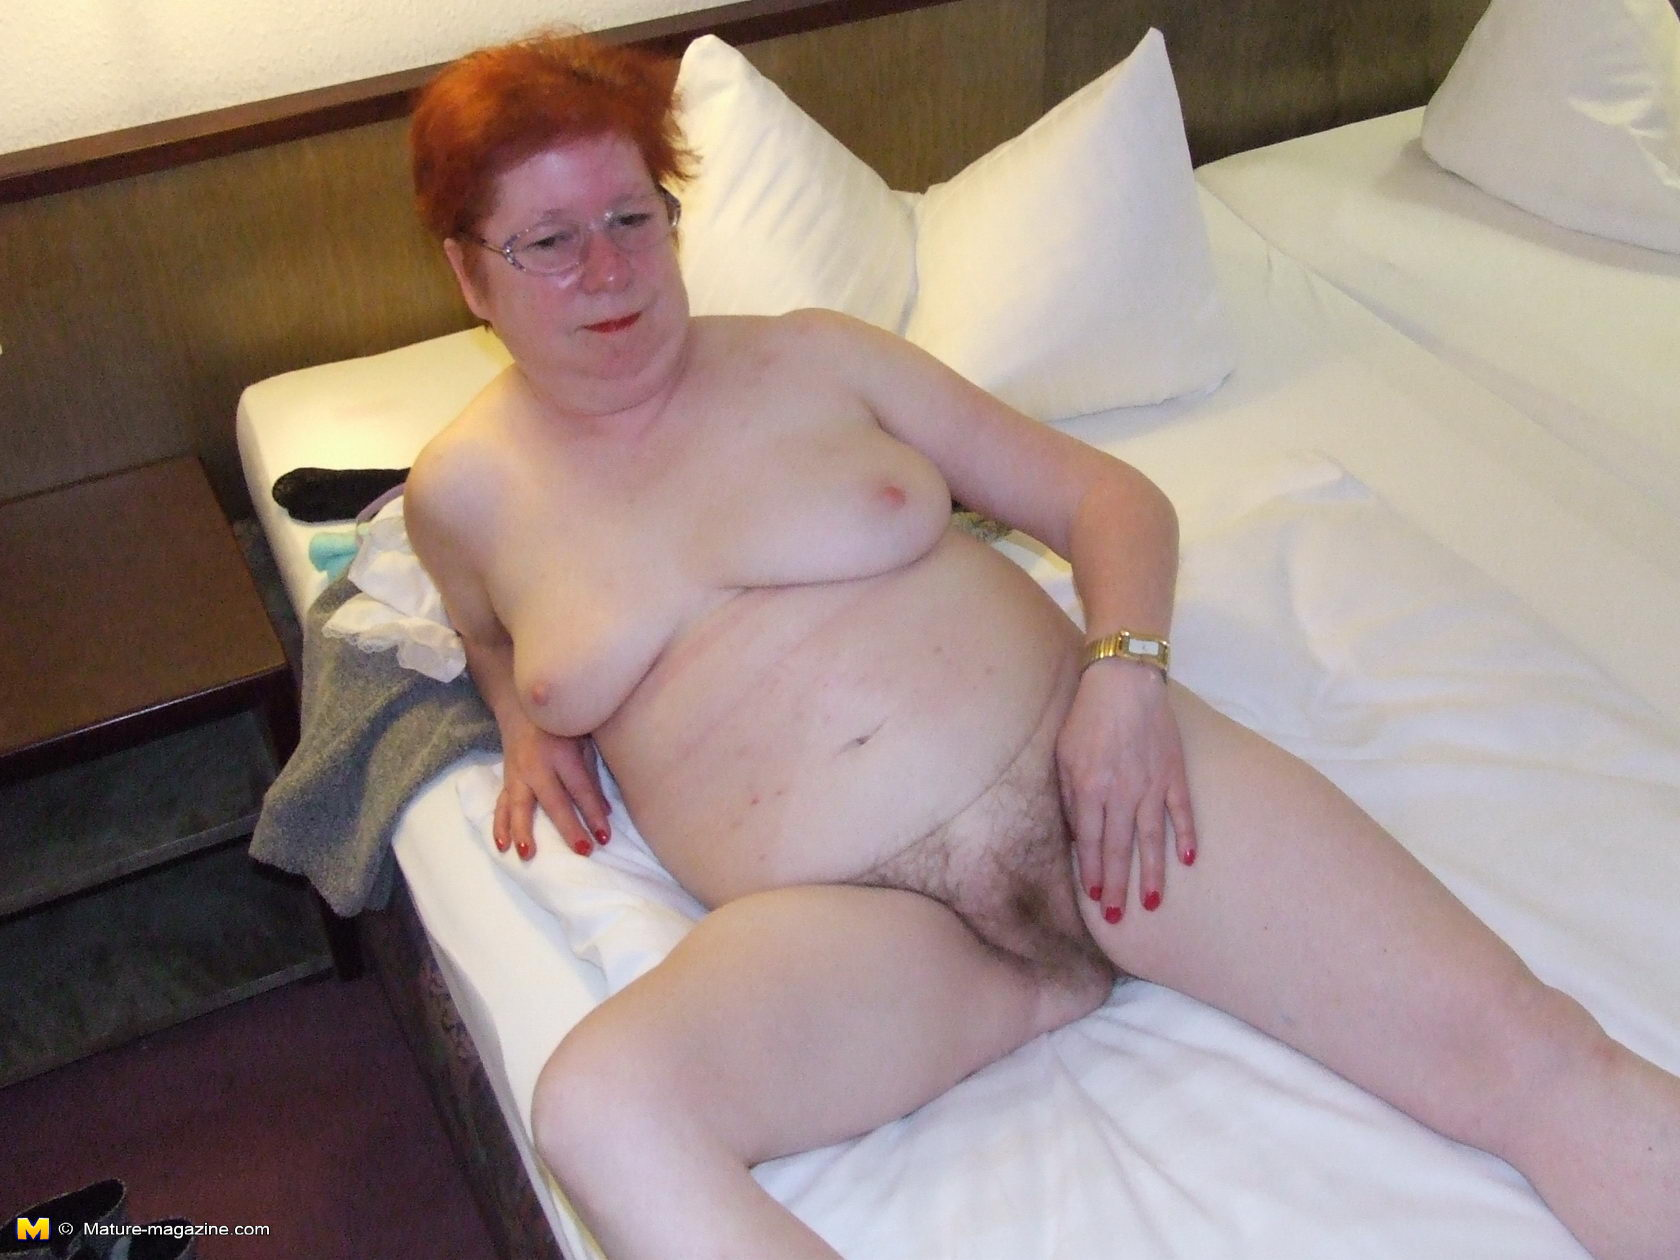 71yr old hairy grandma fuck outdoor by 18yr old german boy 1